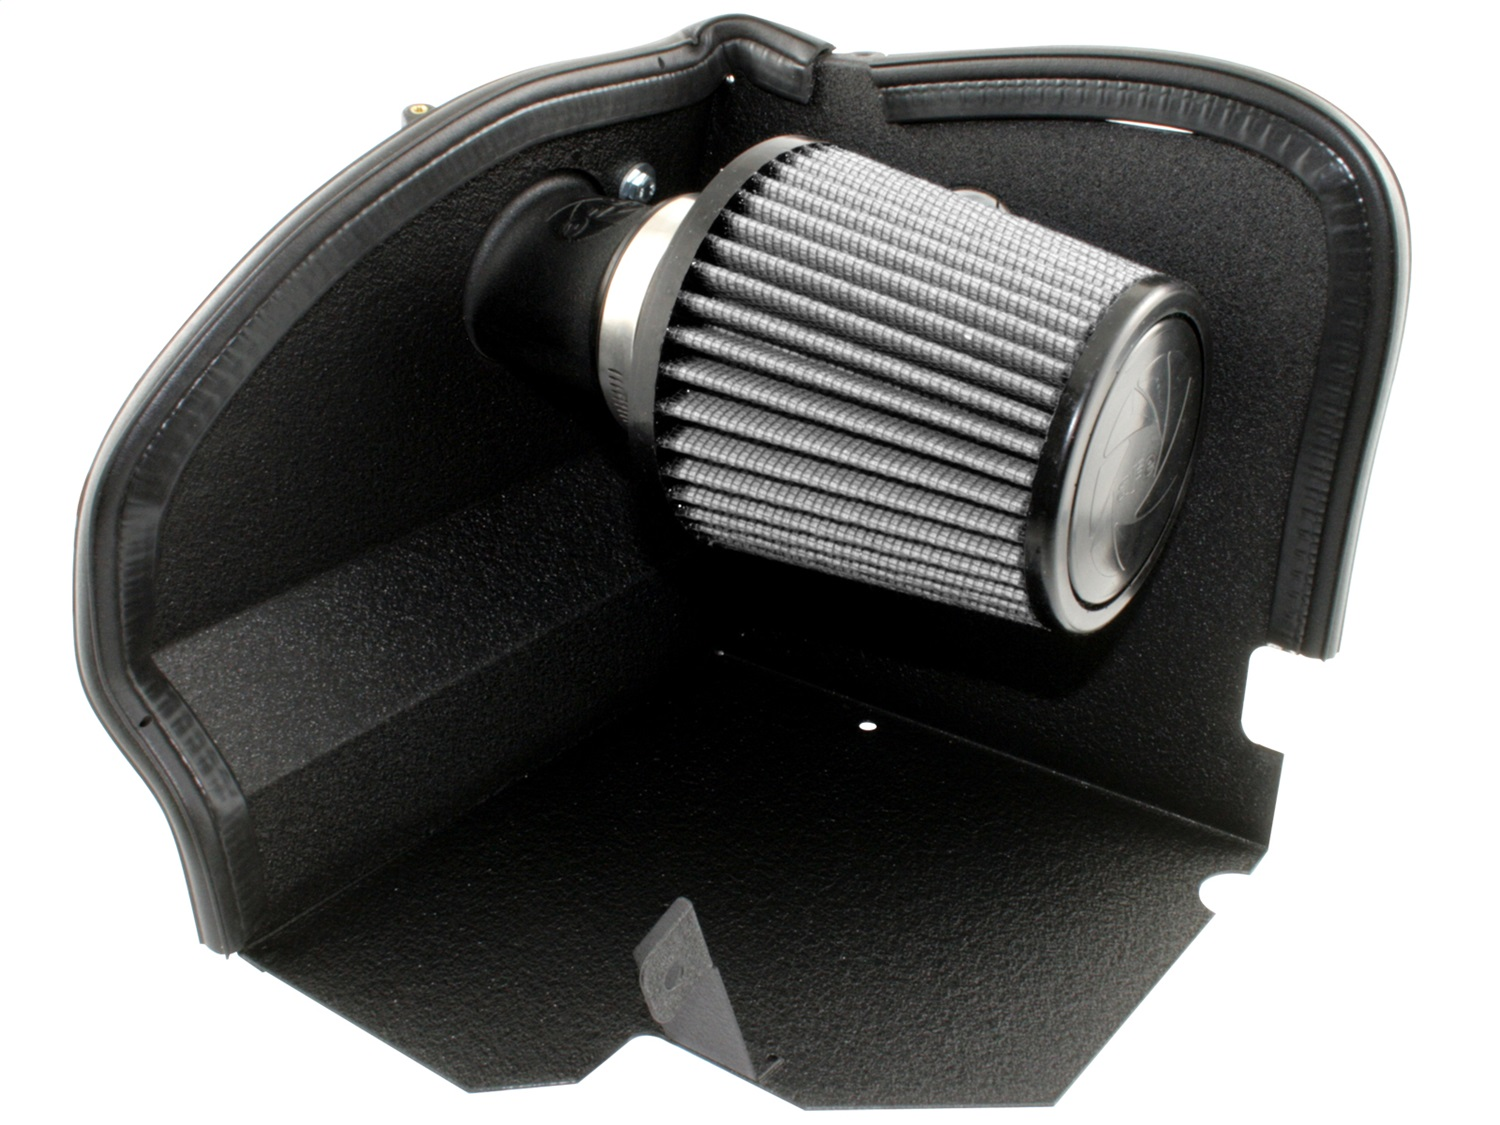 aFe Filters 51-31342-1 Stage 2 XP Pro Dry S Cold Air Intake System